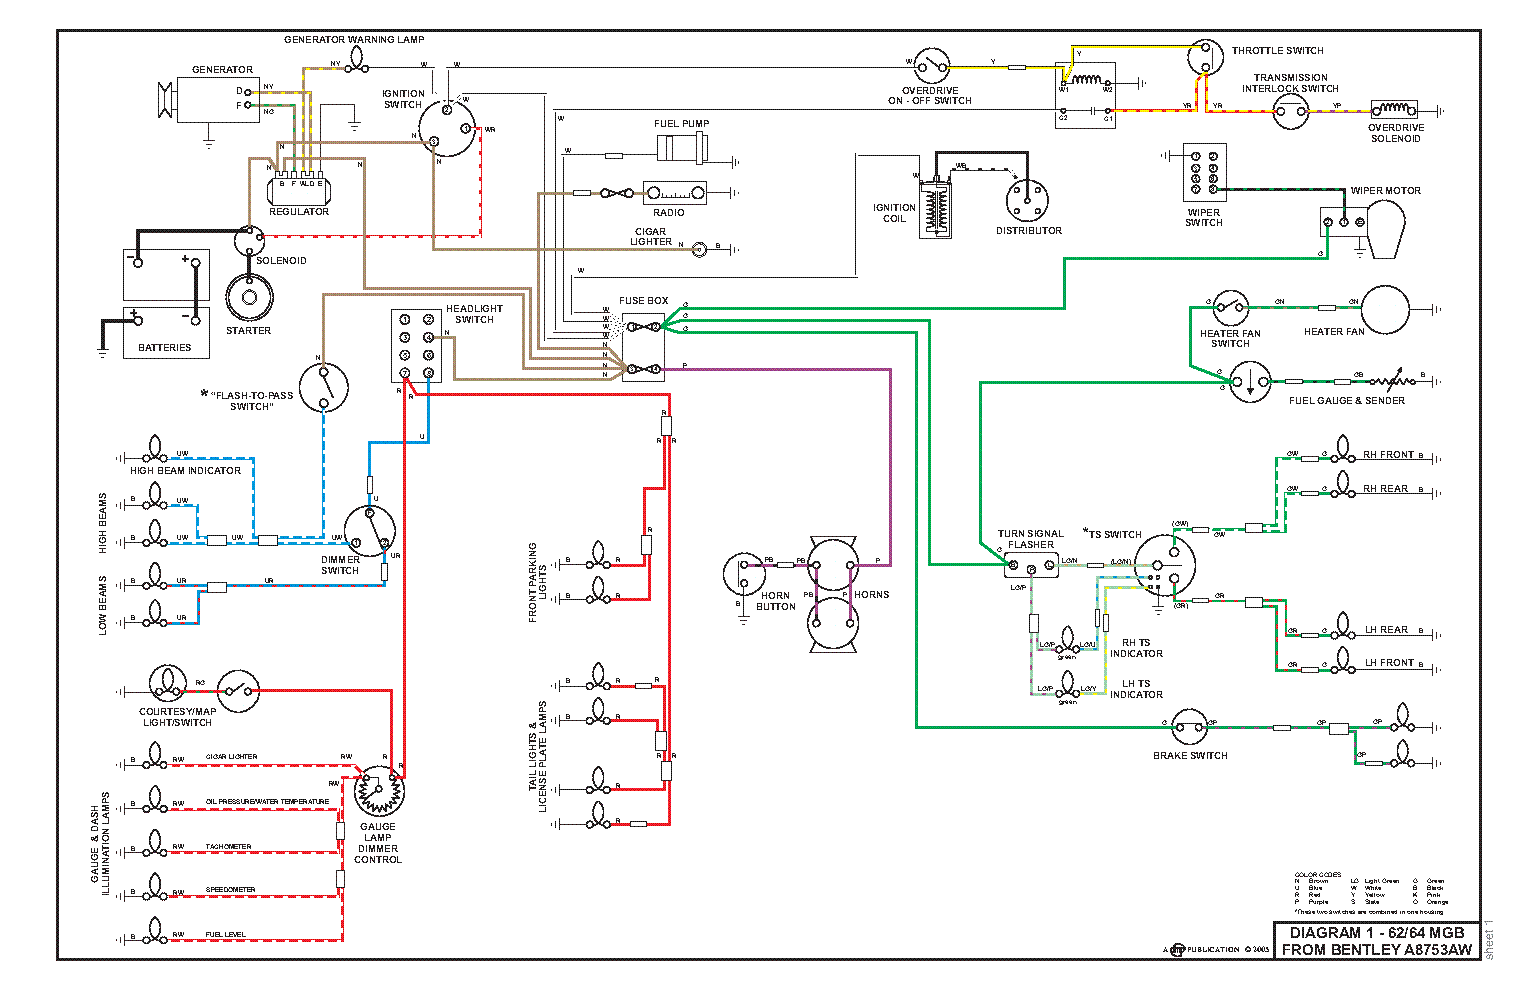 bentley_mg_b_car_wiring_diagrams.pdf_1 elektrotanya com previews 45612216 autohack bentle how to read automotive wiring diagrams pdf at gsmx.co